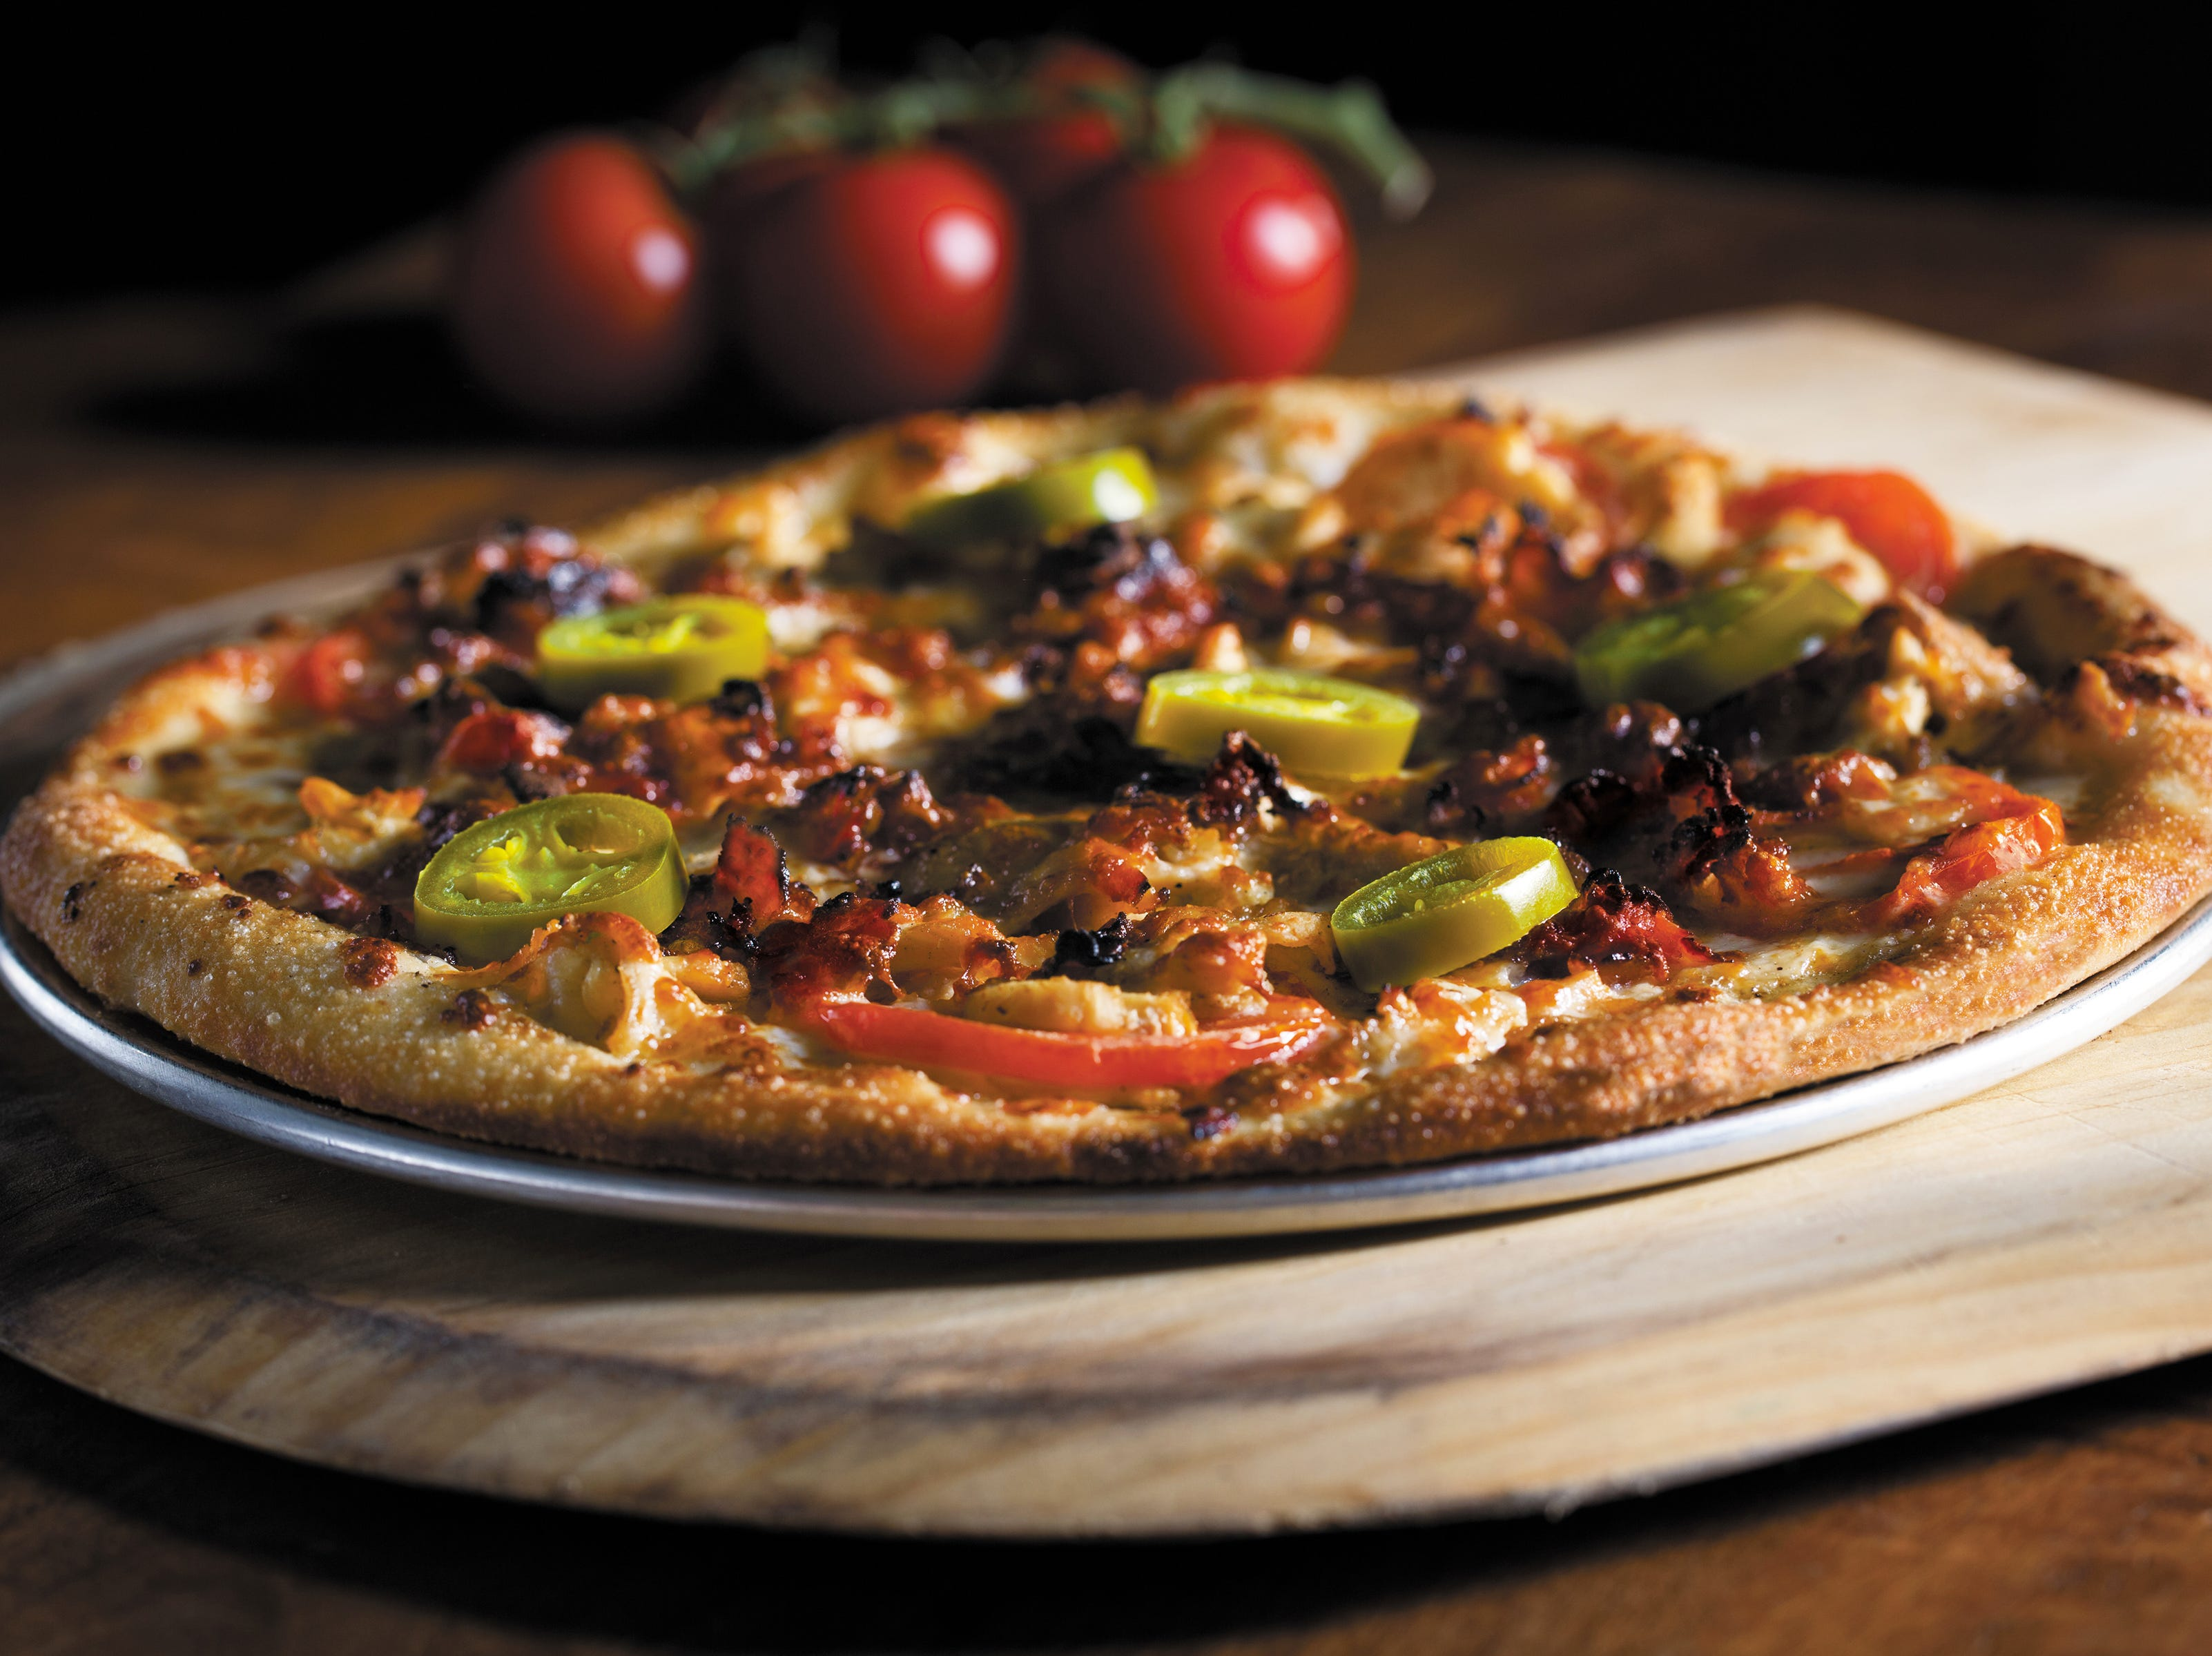 "Newk's ""Q"" Pizza, a Newcomb family recipe, features grilled chicken breast, a white barbecue sauce, crumbled bacon, vine-ripened tomatoes, house-shredded mozzrella and provolone cheeses on a crust brushed with chili oil and garnished with jalapenos."